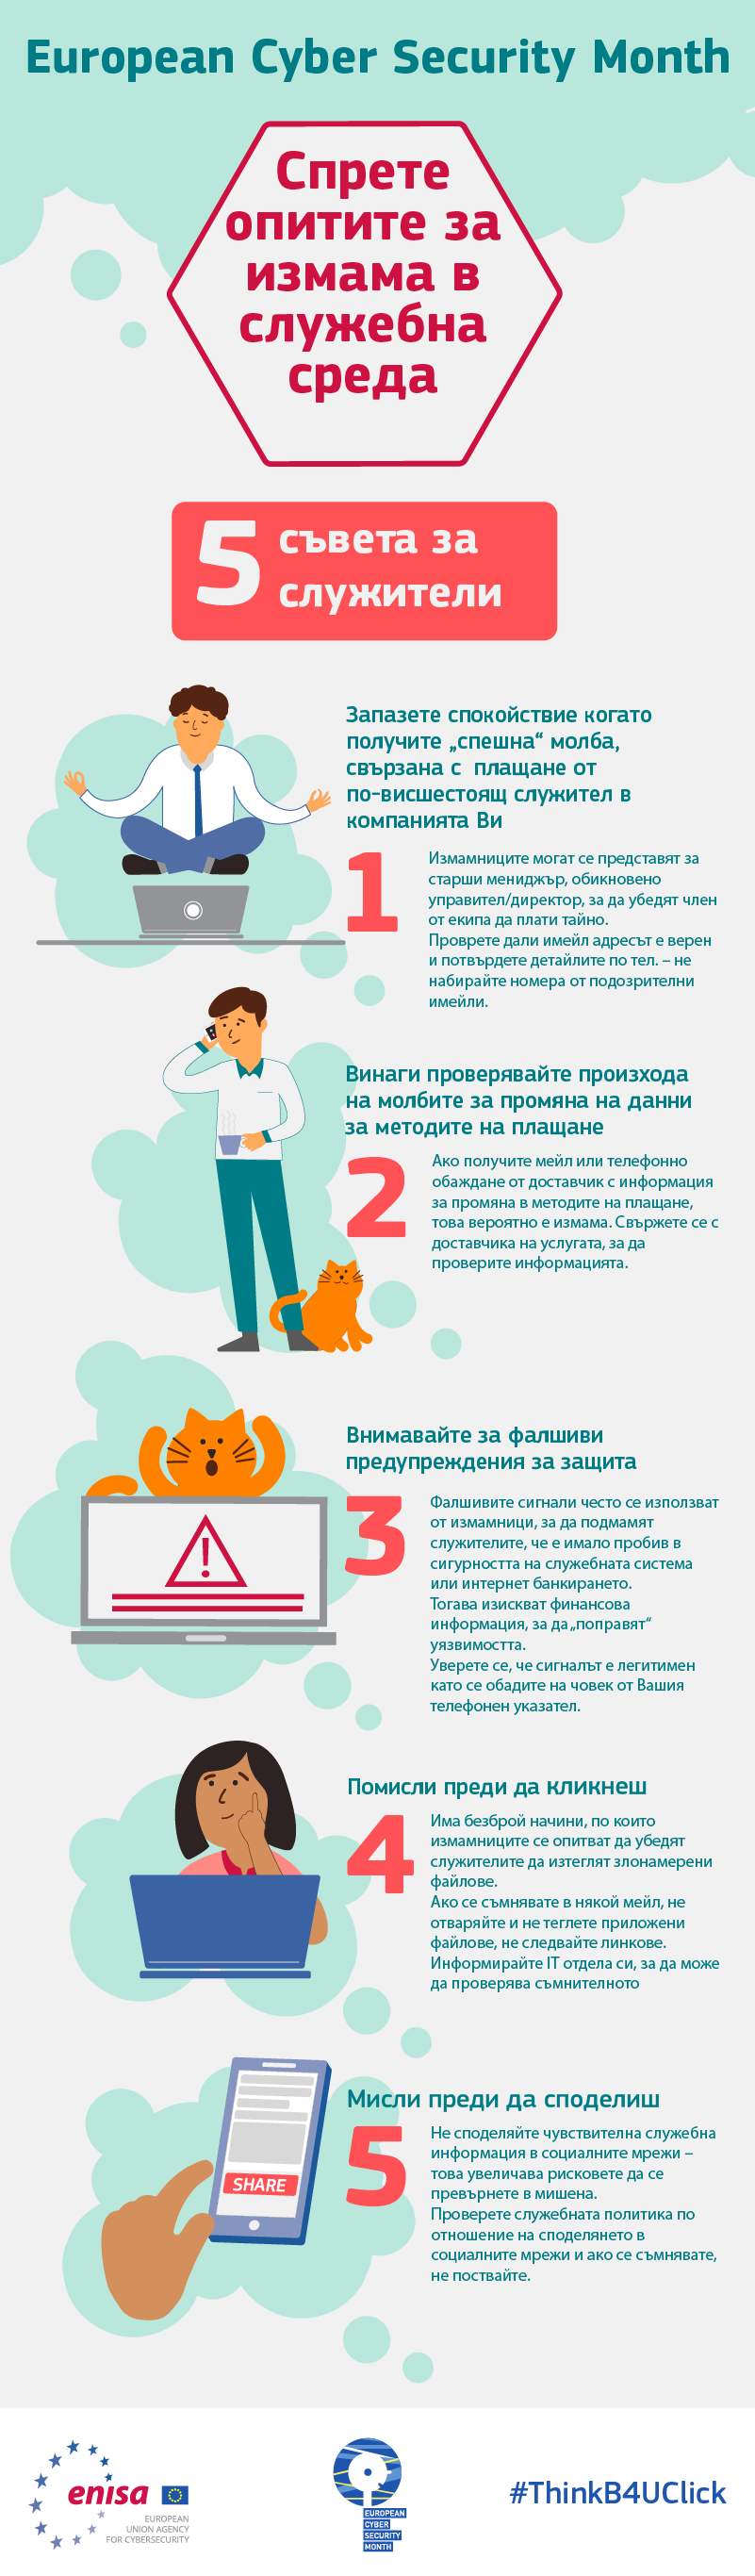 ENISA_ECSM_Cyberscams Infographic_Bulgarian_1.png